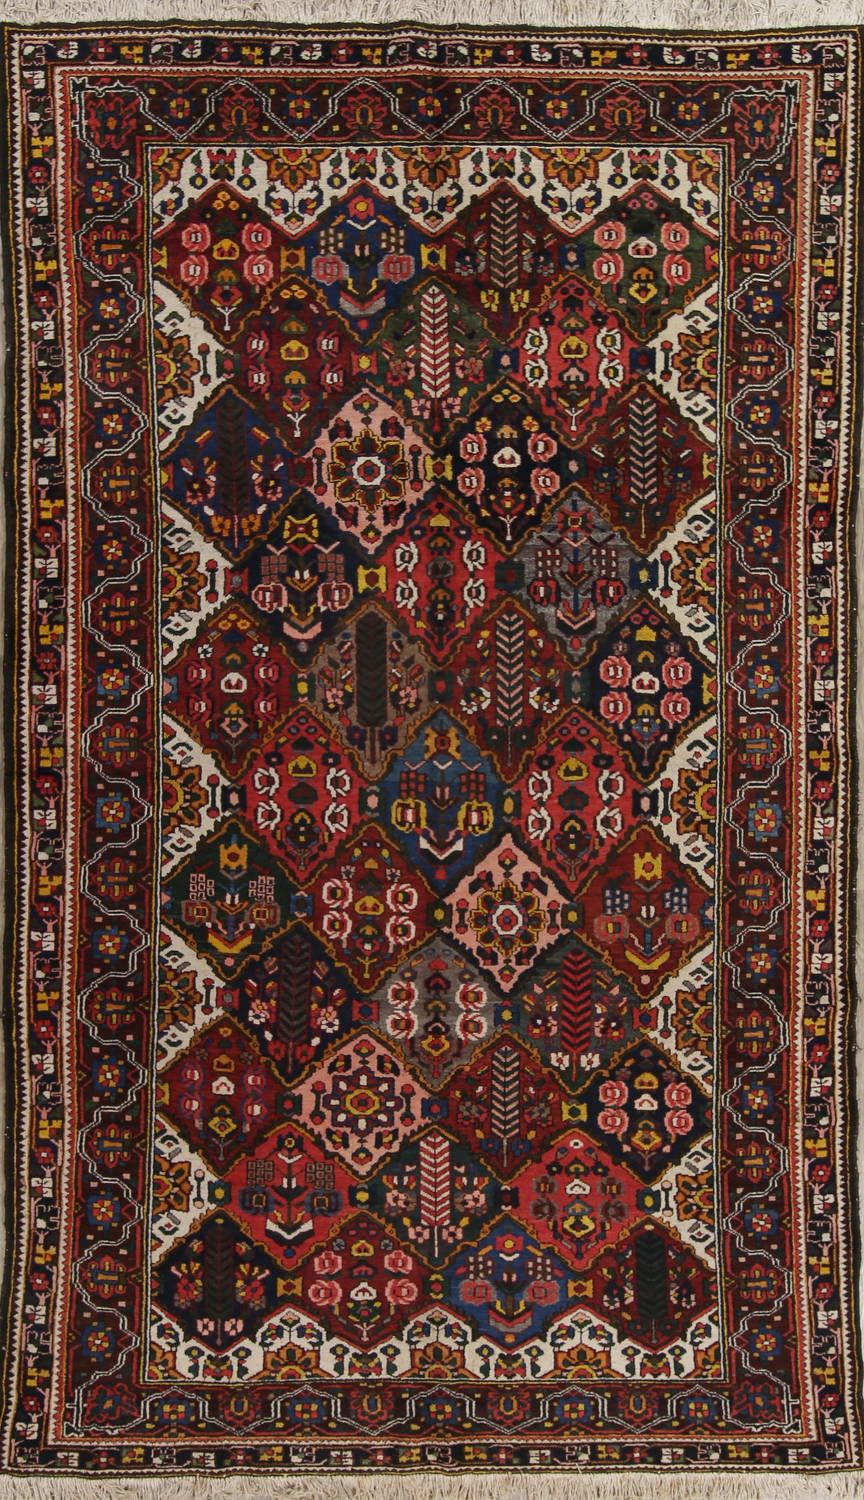 Antique Vegetable Dye Bakhtiari Persian Hand-Knotted Area Rug 7x12 image 1